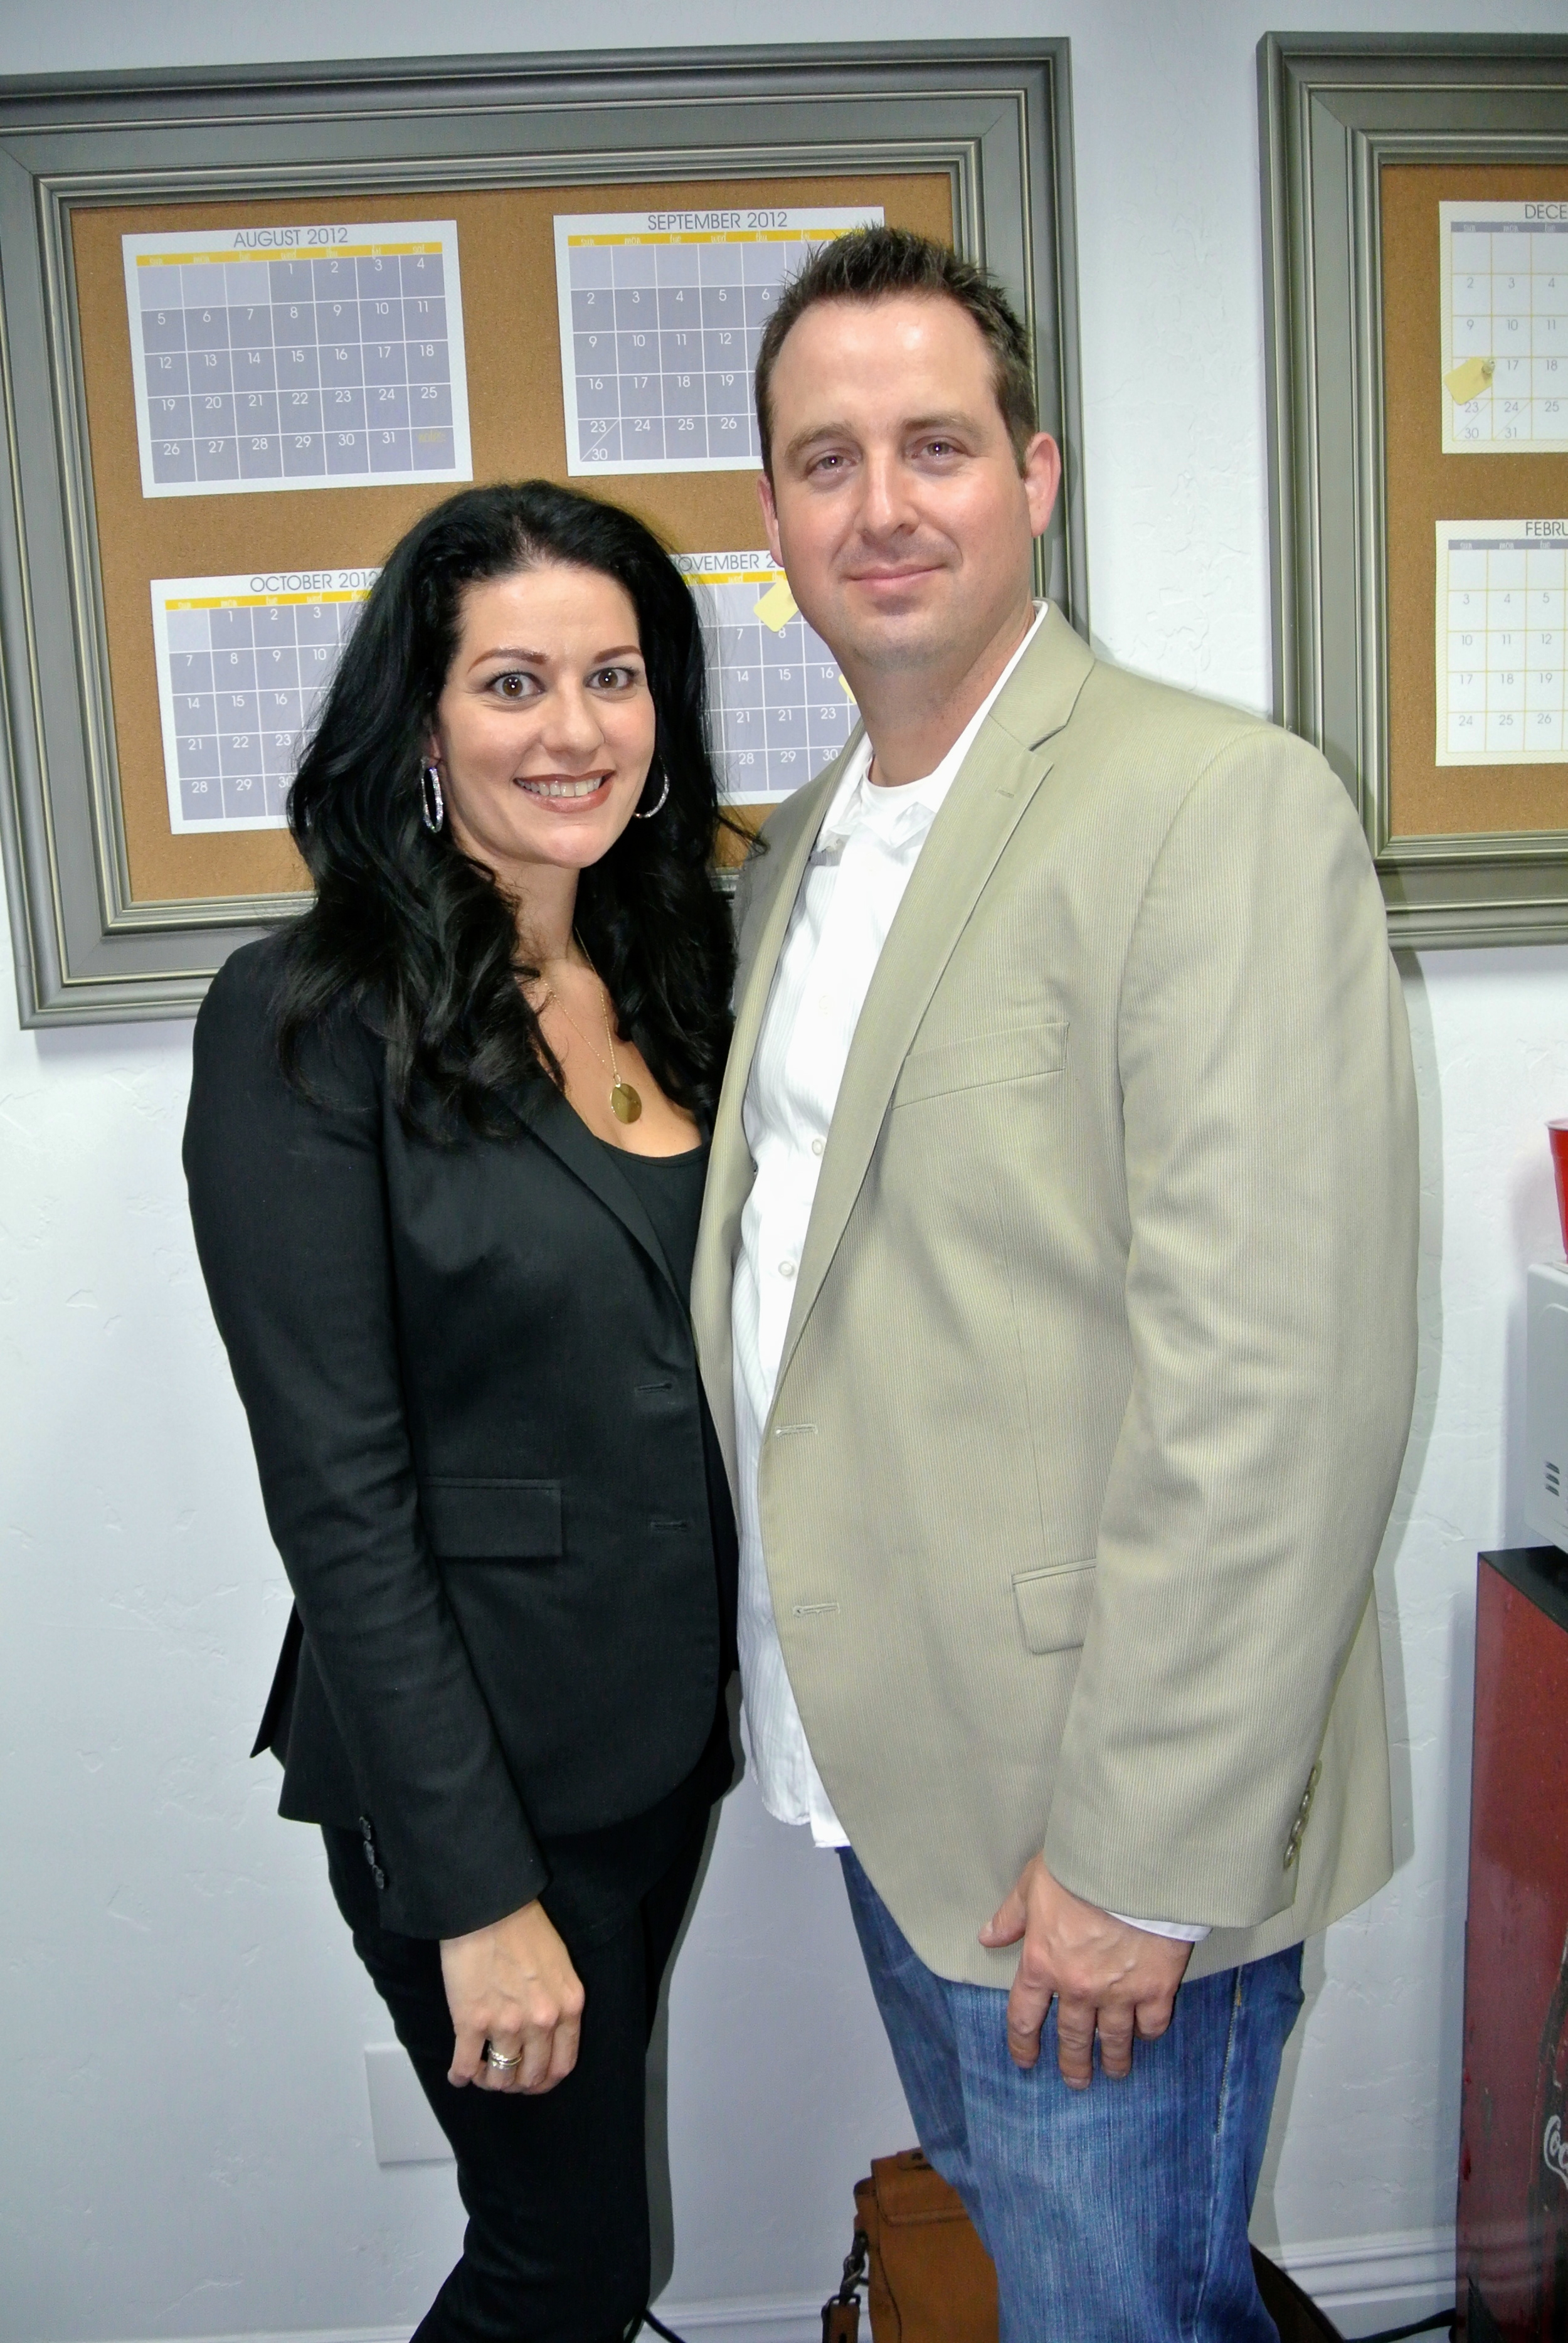 With Brian Derck, founder of Brian Derck Marketing and Design